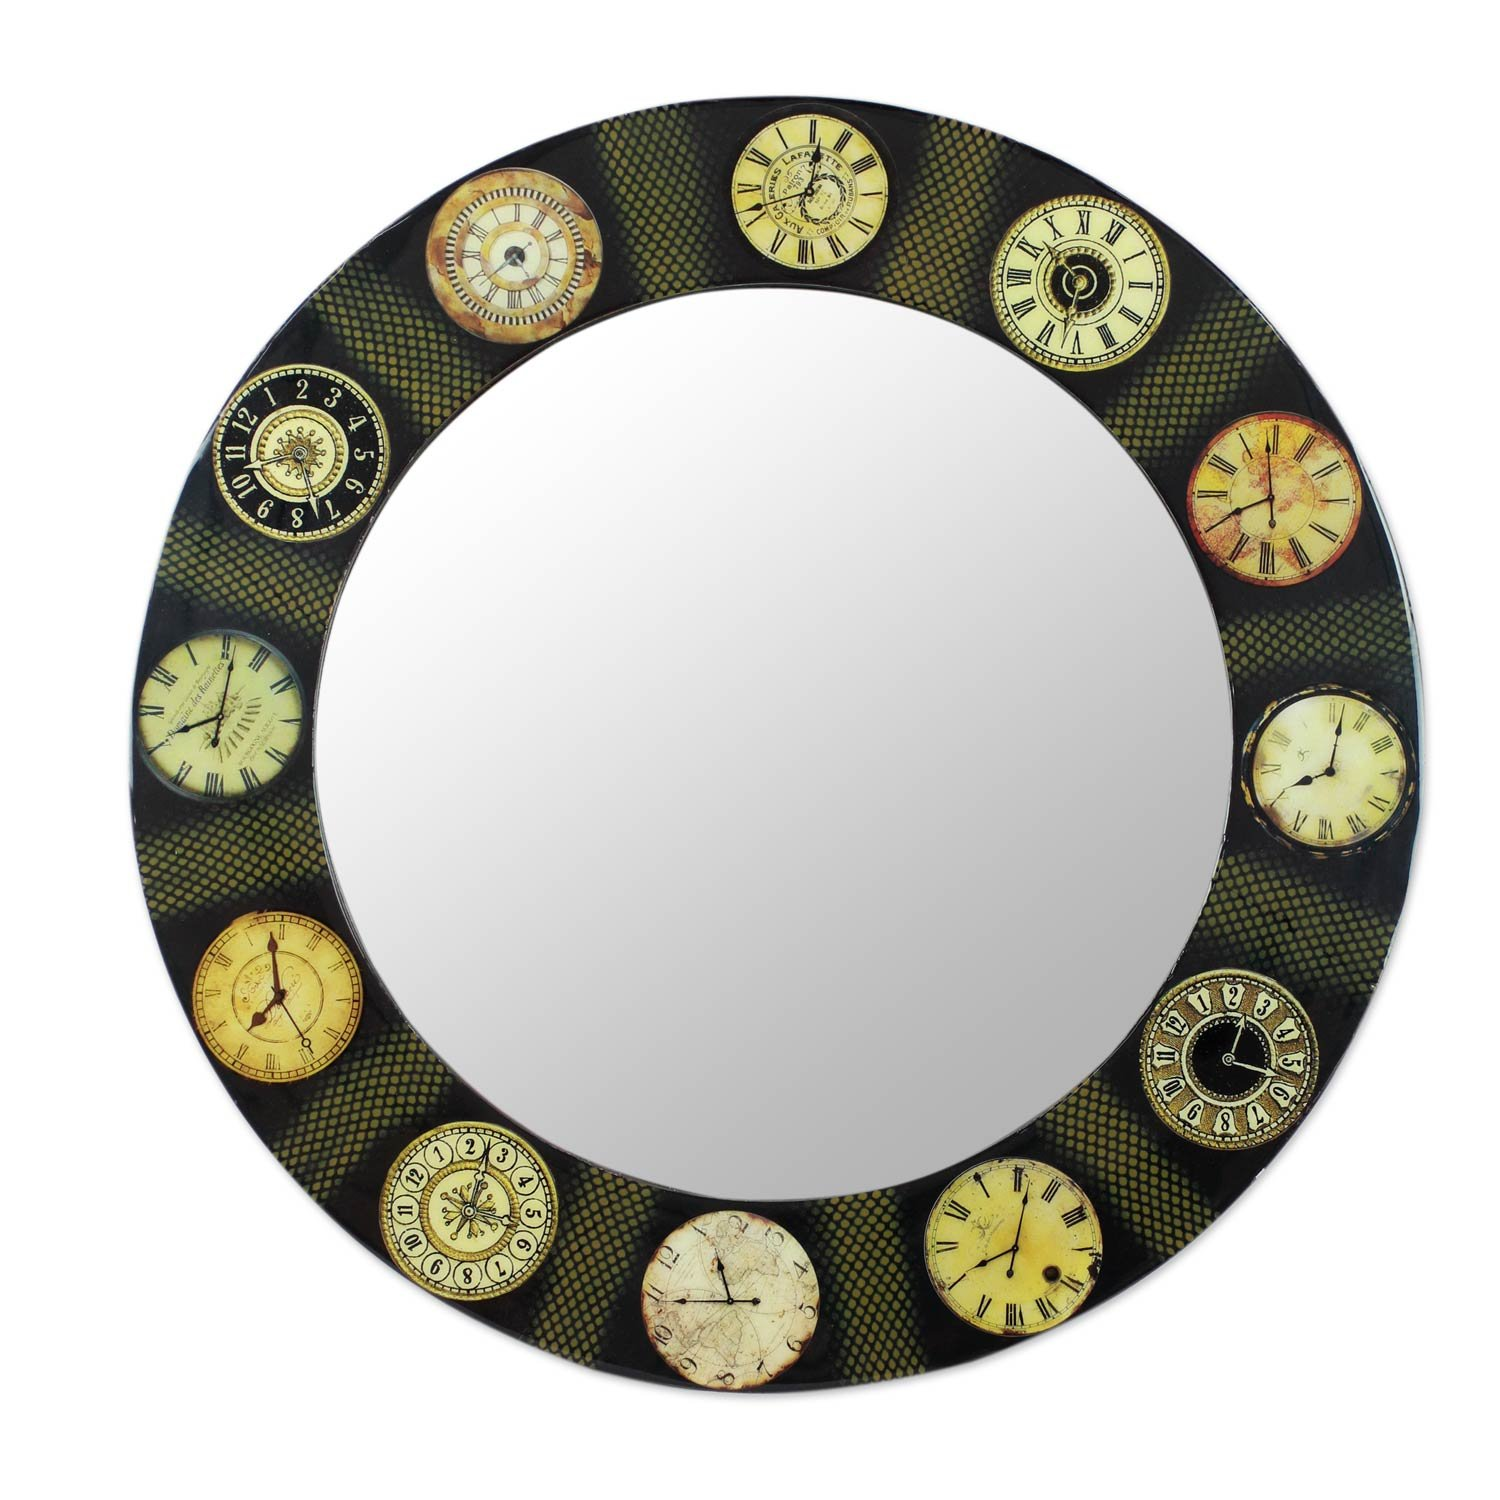 NOVICA The Faces of Time Decoupage Wall Mirror